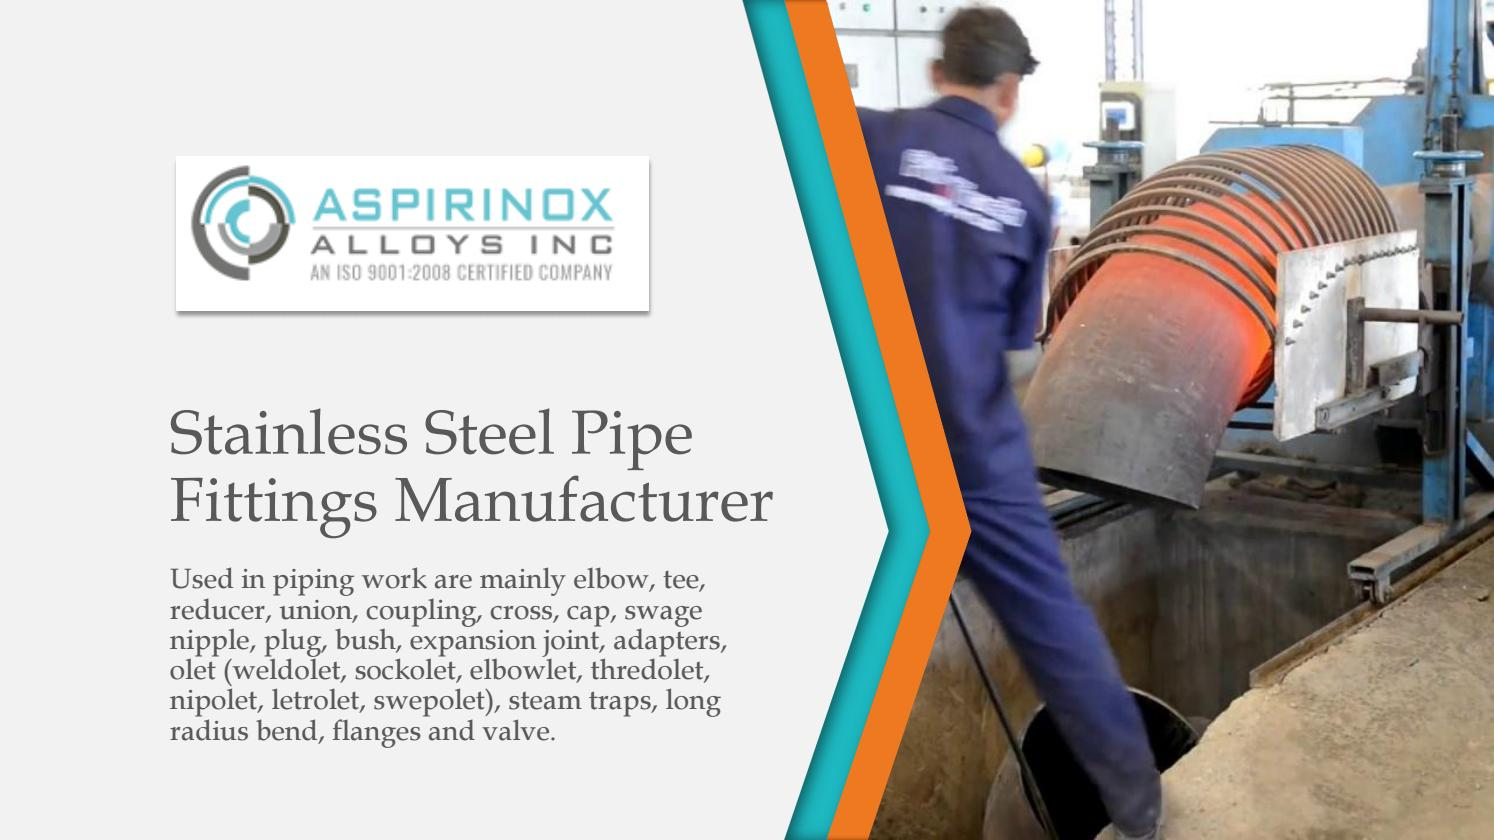 Stainless steel pipe fittings manufacturer by aspirinox com - issuu